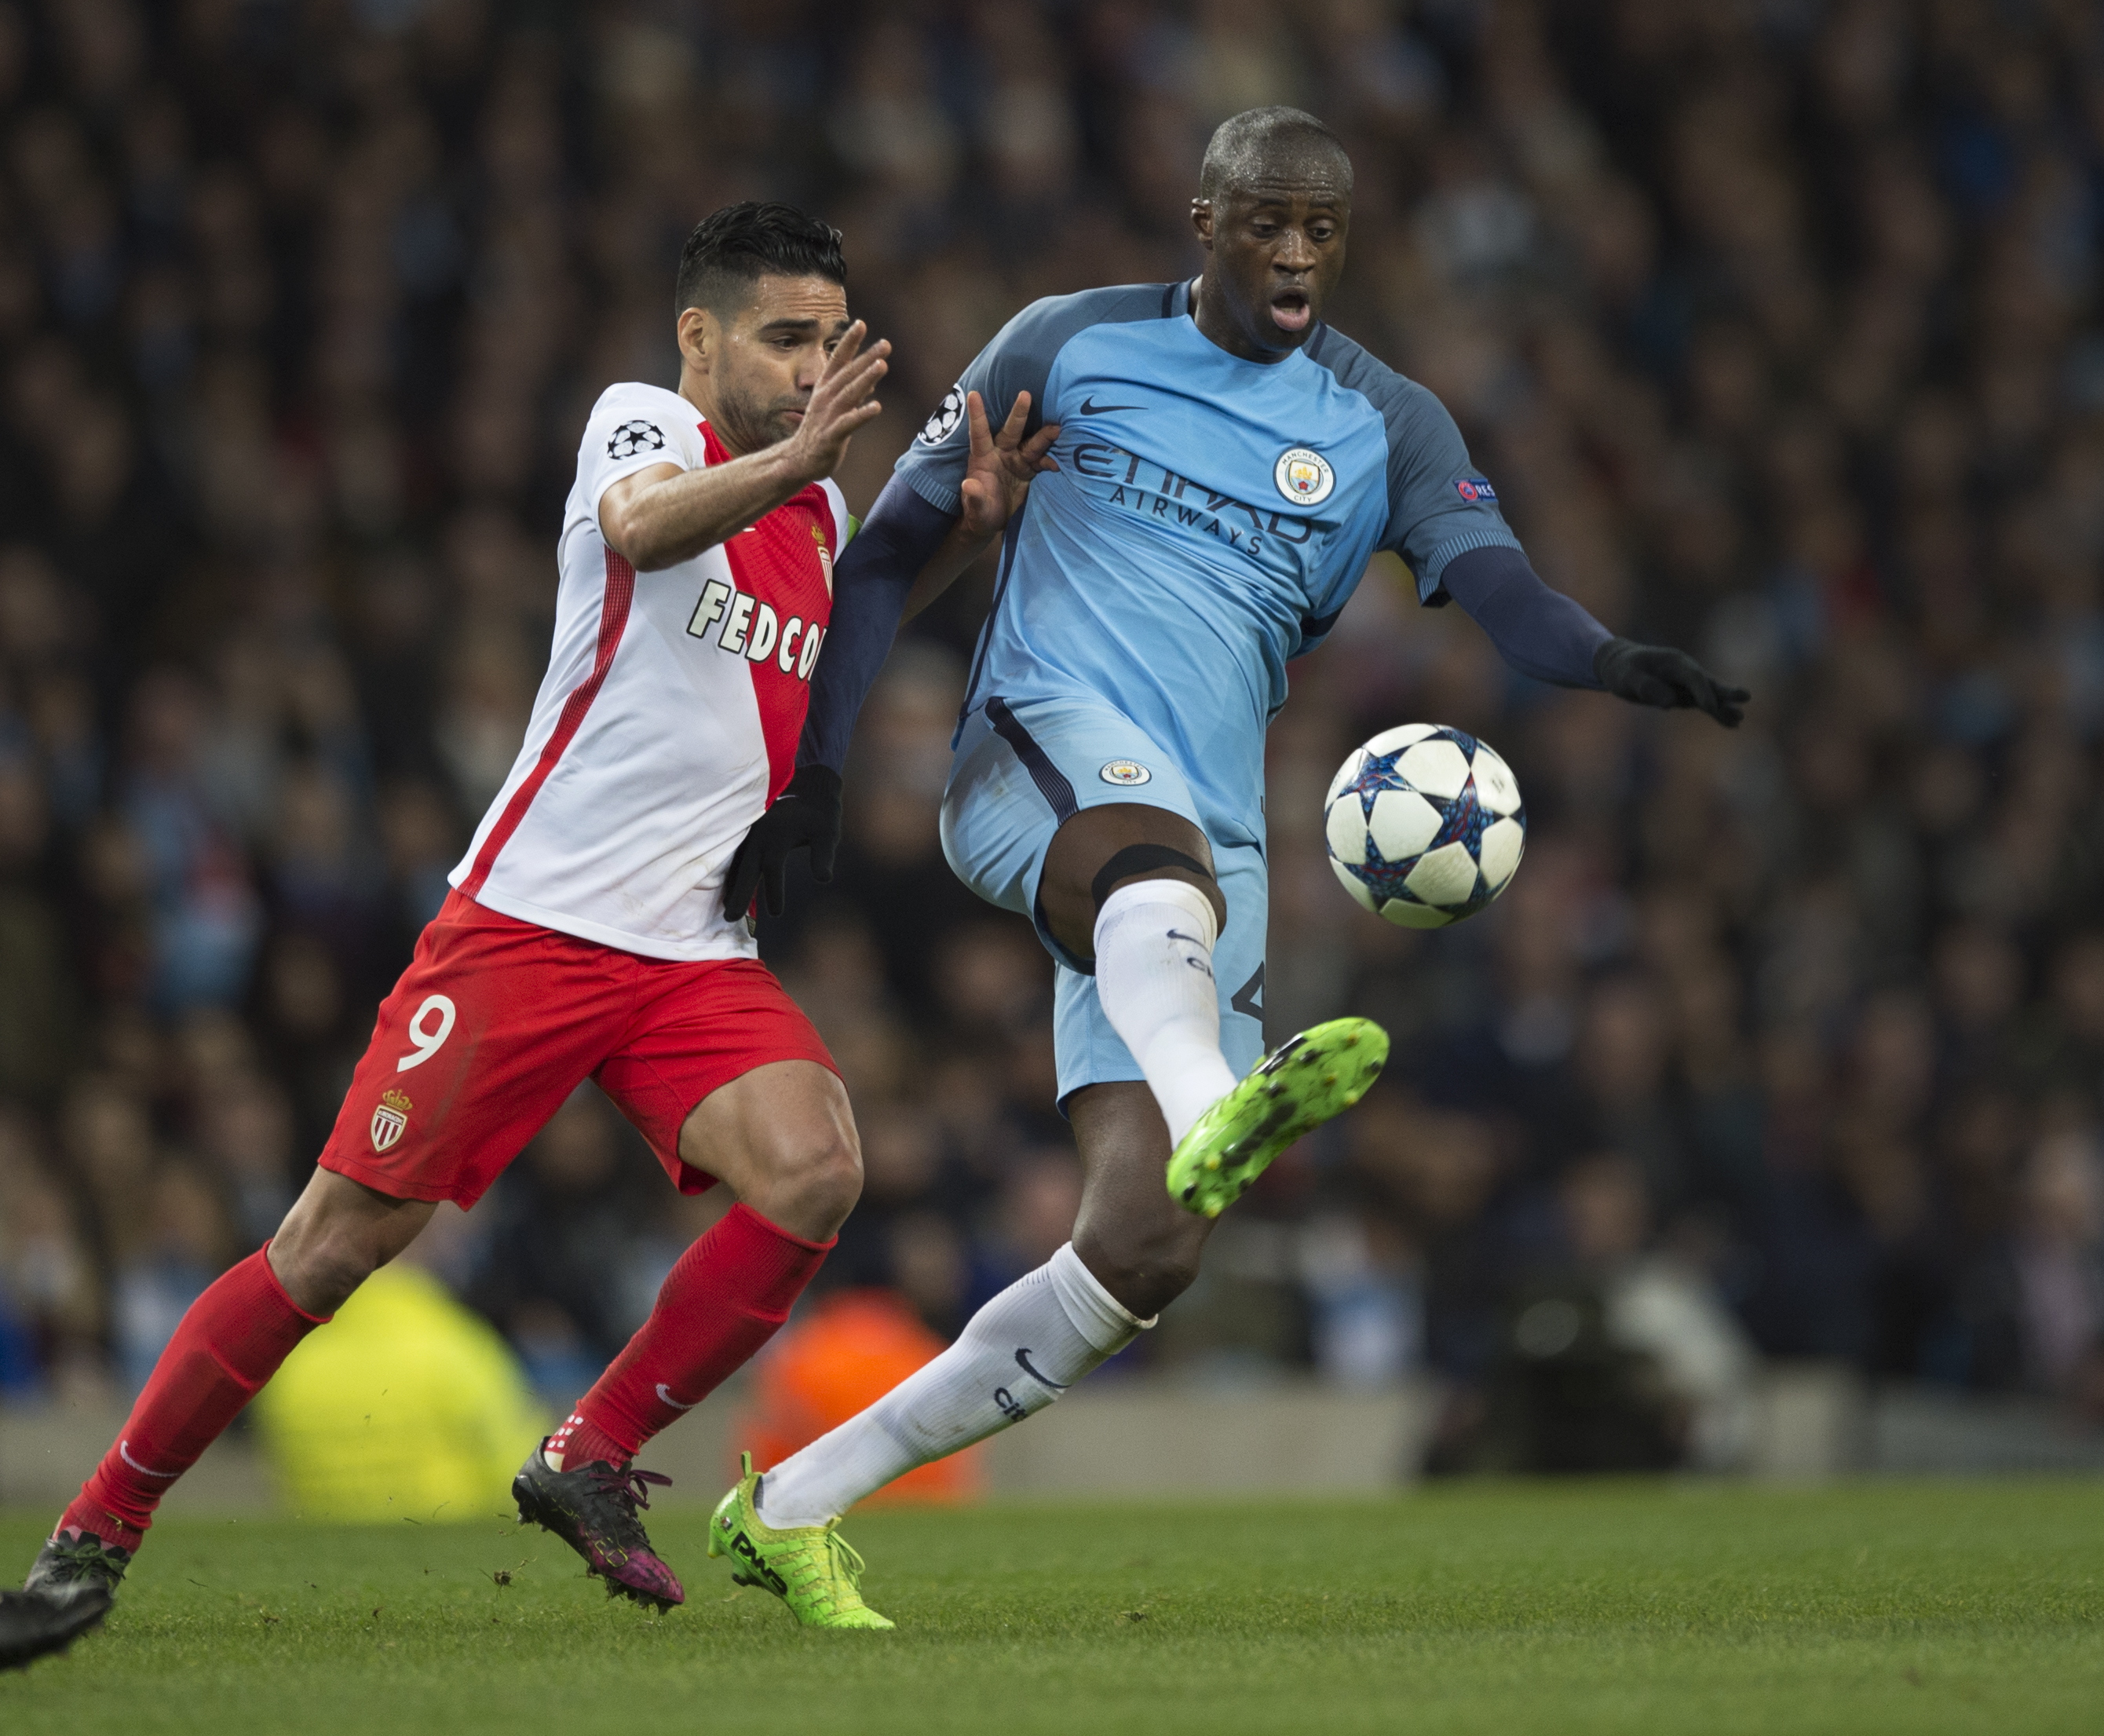 644653498-manchester-city-fc-v-as-monaco-uefa-champions-league-round-of-16-first-leg.jpg